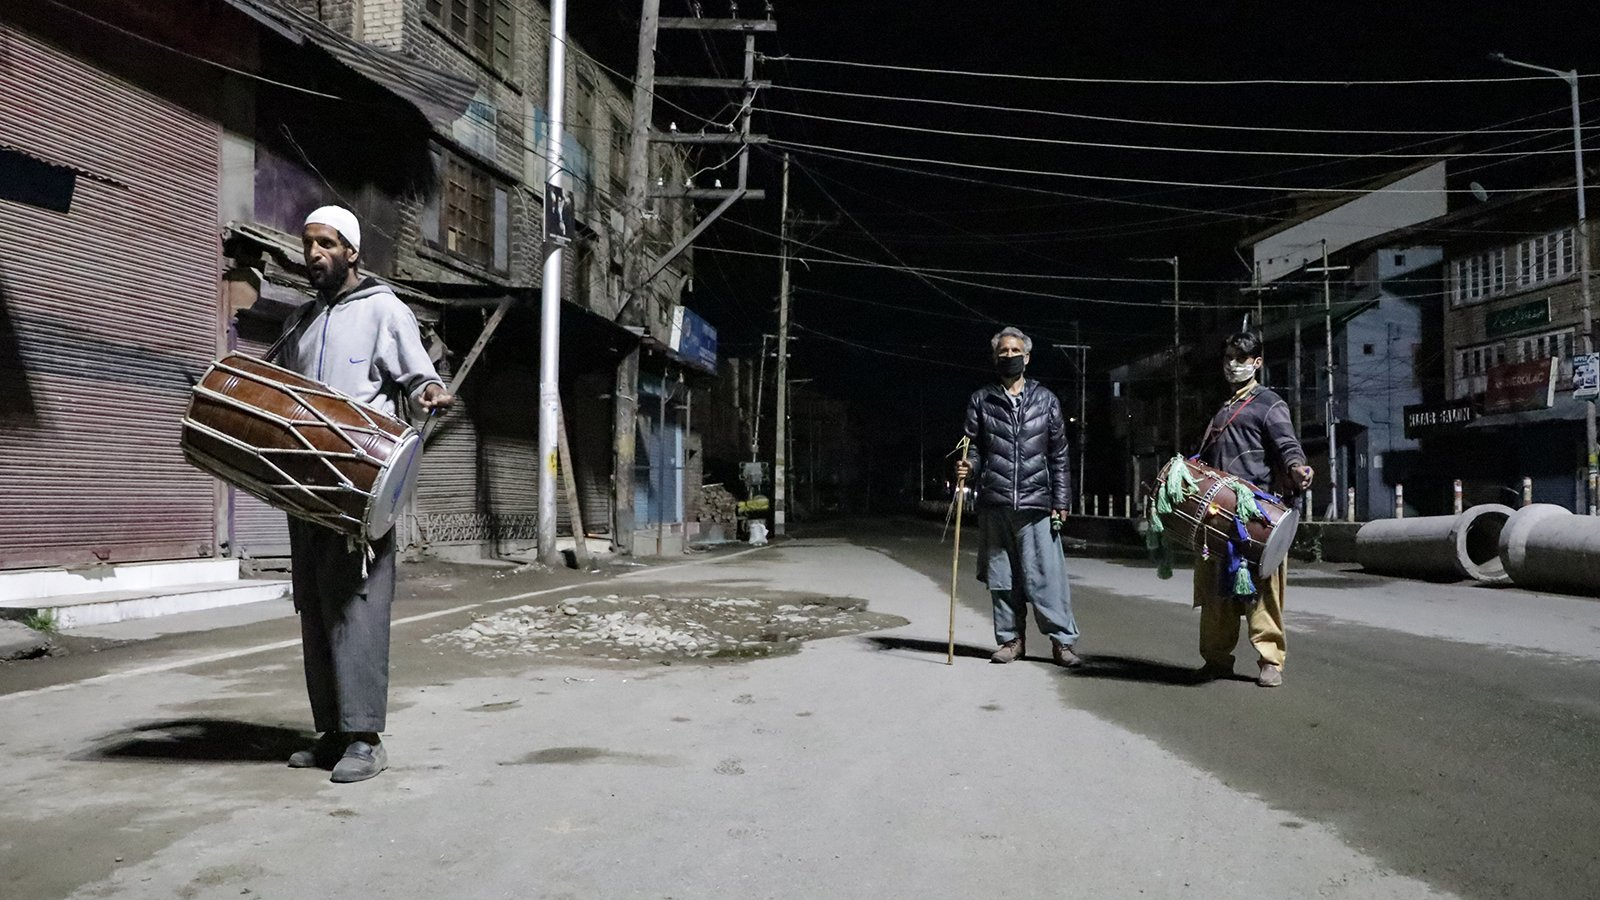 Mohammad Rafiq Katariya, left, and his colleagues beat their drums to wake Muslims at Sehri time in Alamgari Bazar Chowk, an old residential area in Srinagar, Kashmir, India, on April 30, 2021. Photo by Adil Abass